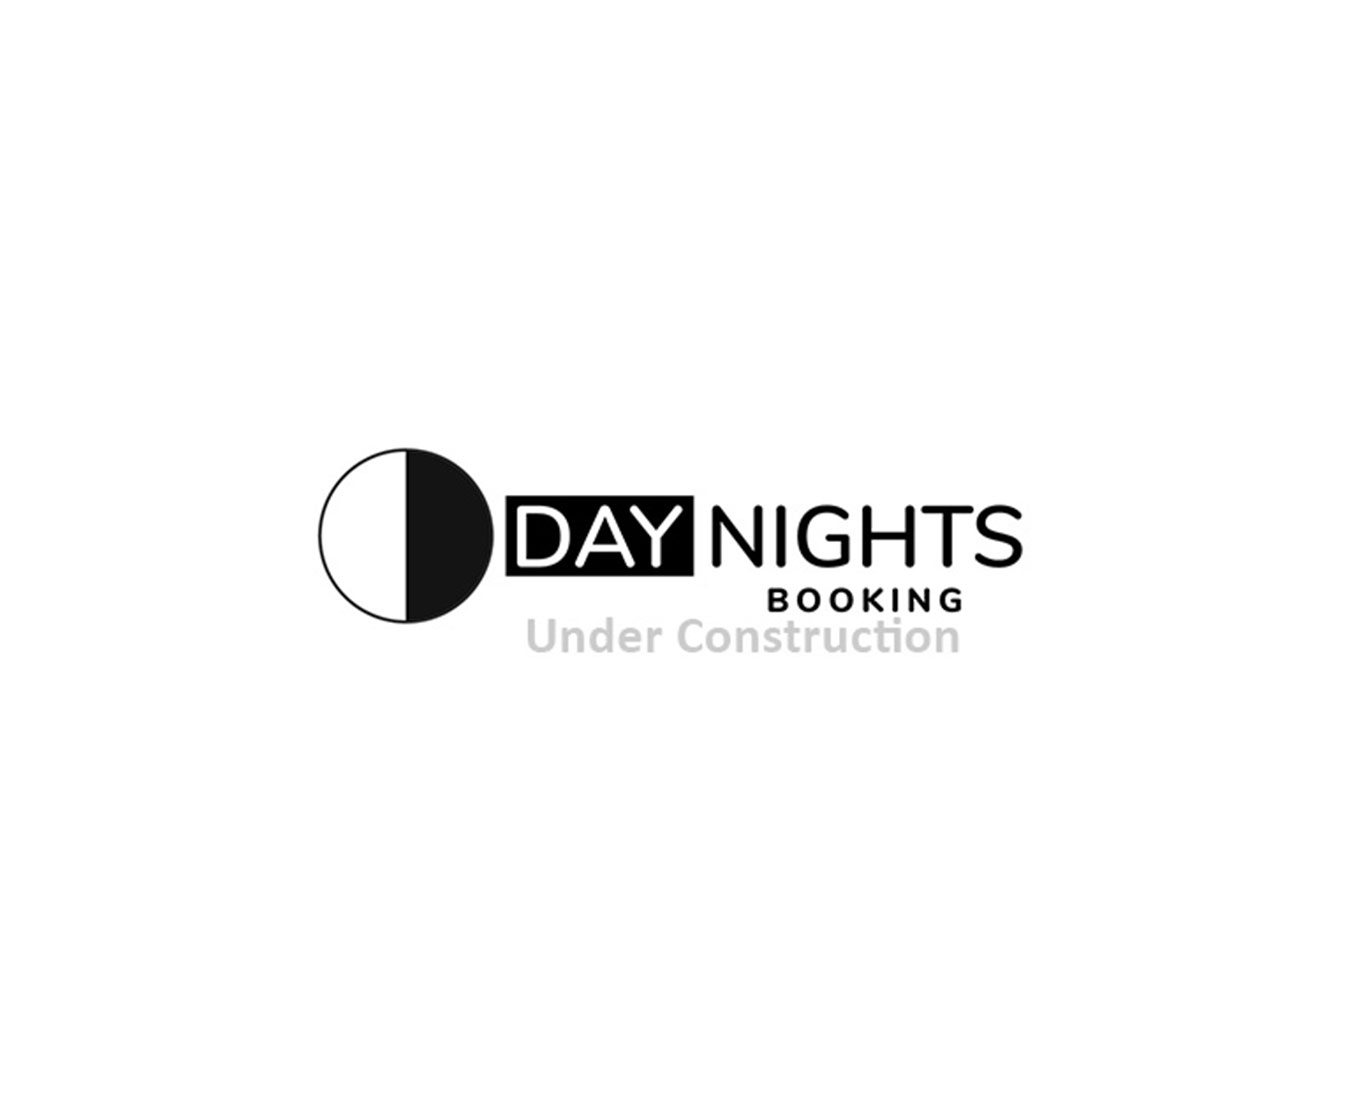 Day Nights Booking